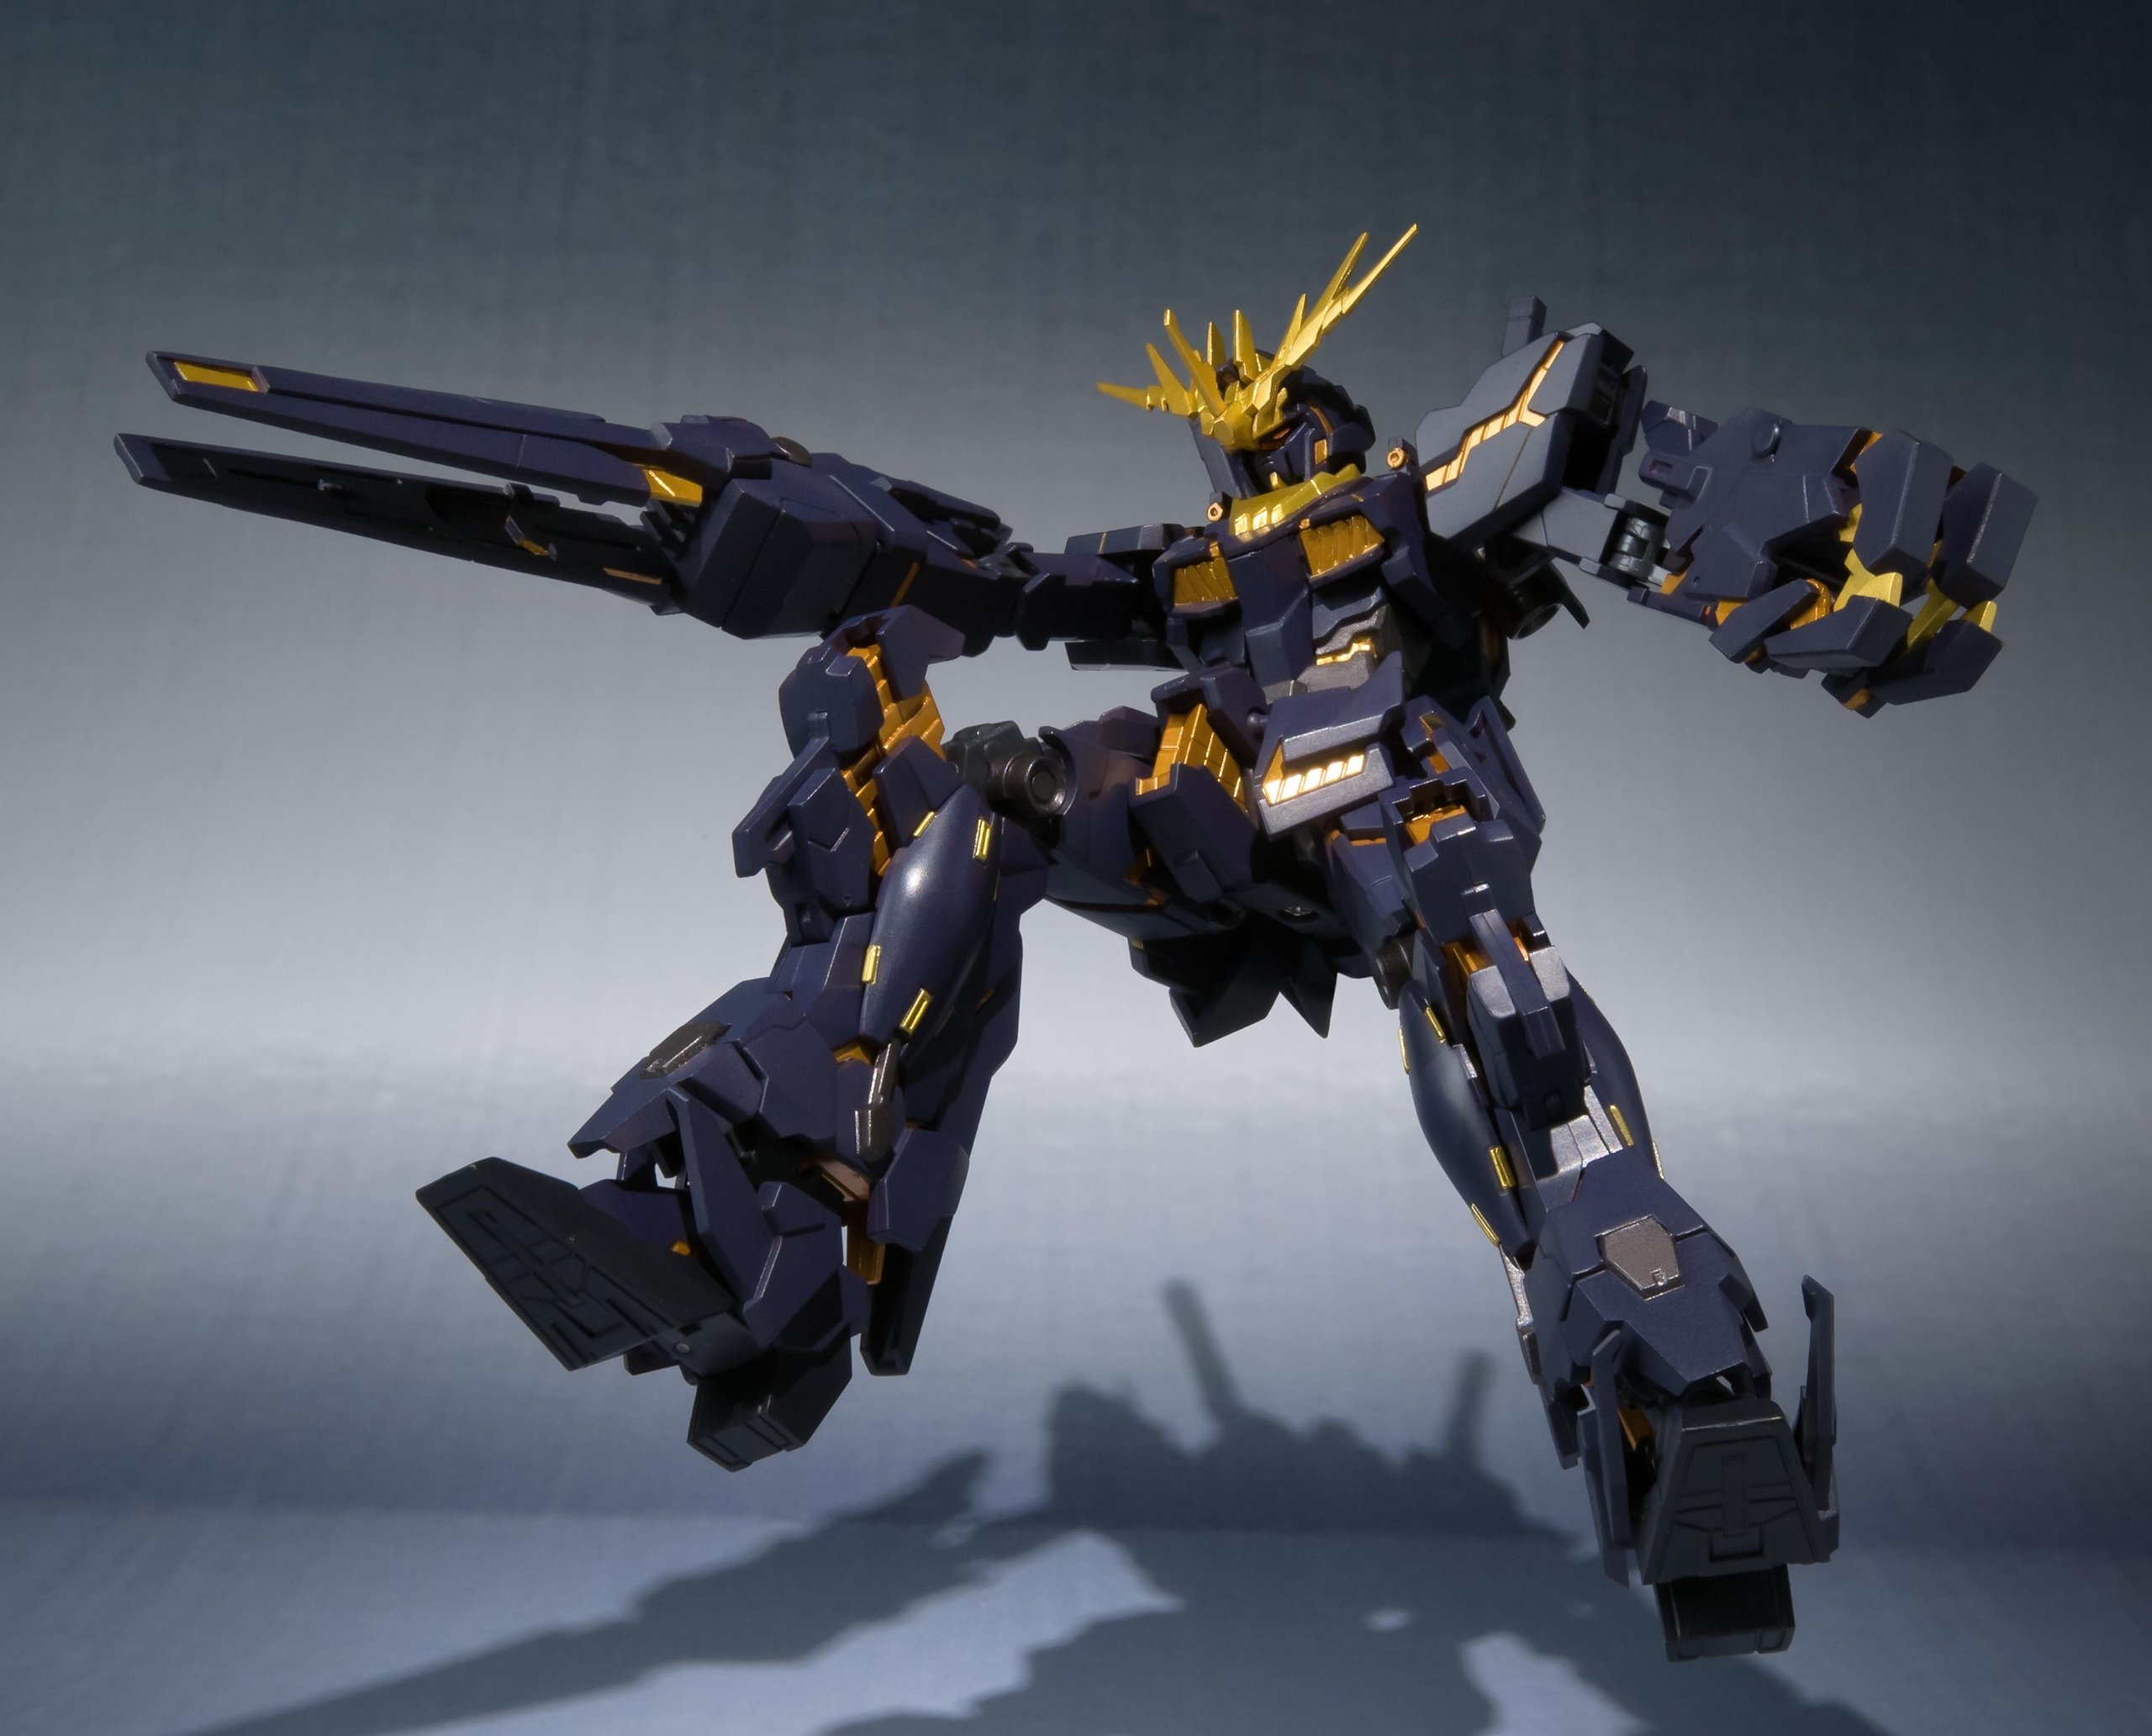 Robot Damashii Side Ms Gundam Unicorn Banshee No 11